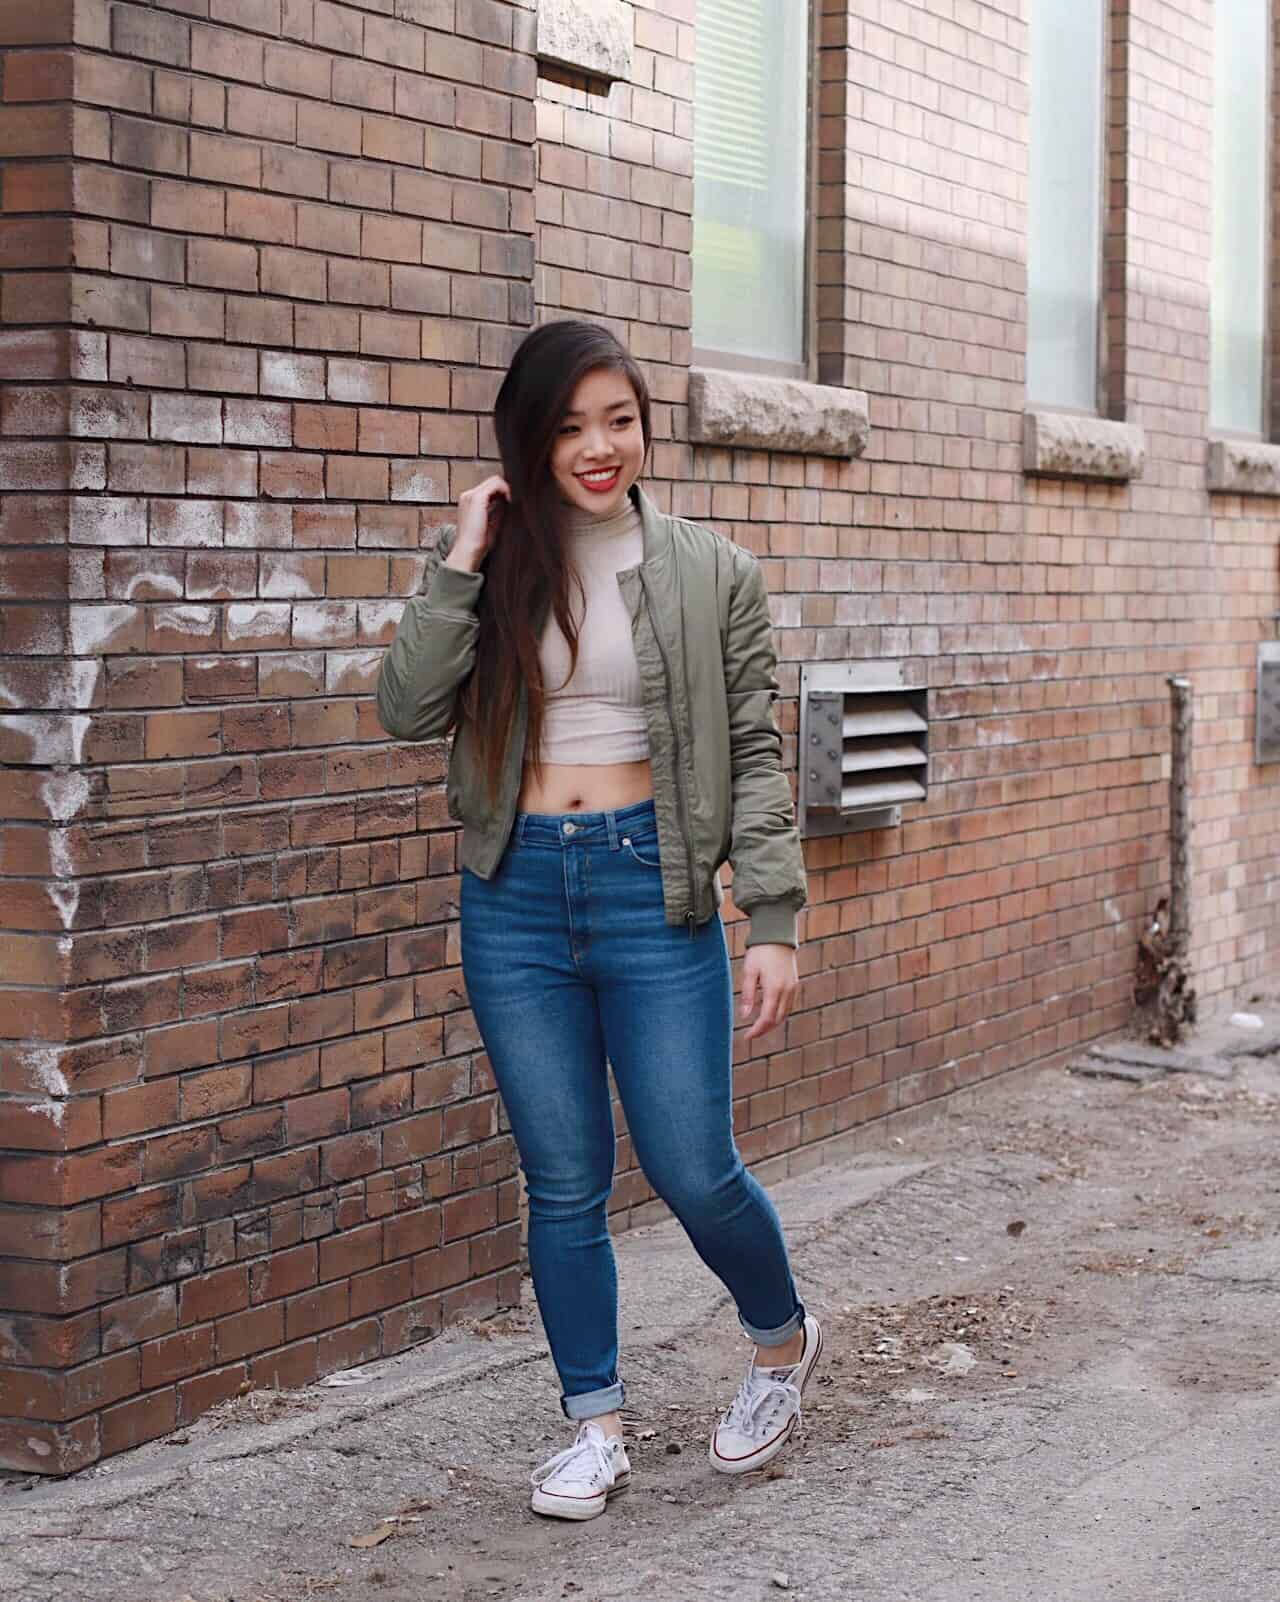 Best jeans for petites   top denim for petite women   how to style high waist jeans for spring   high waisted denim outfit ideas   ivory cropped turtleneck with military green bomber jacket, blue high-waisted denim, and white converse   Diary of a Toronto Girl, a Canadian lifestyle blog